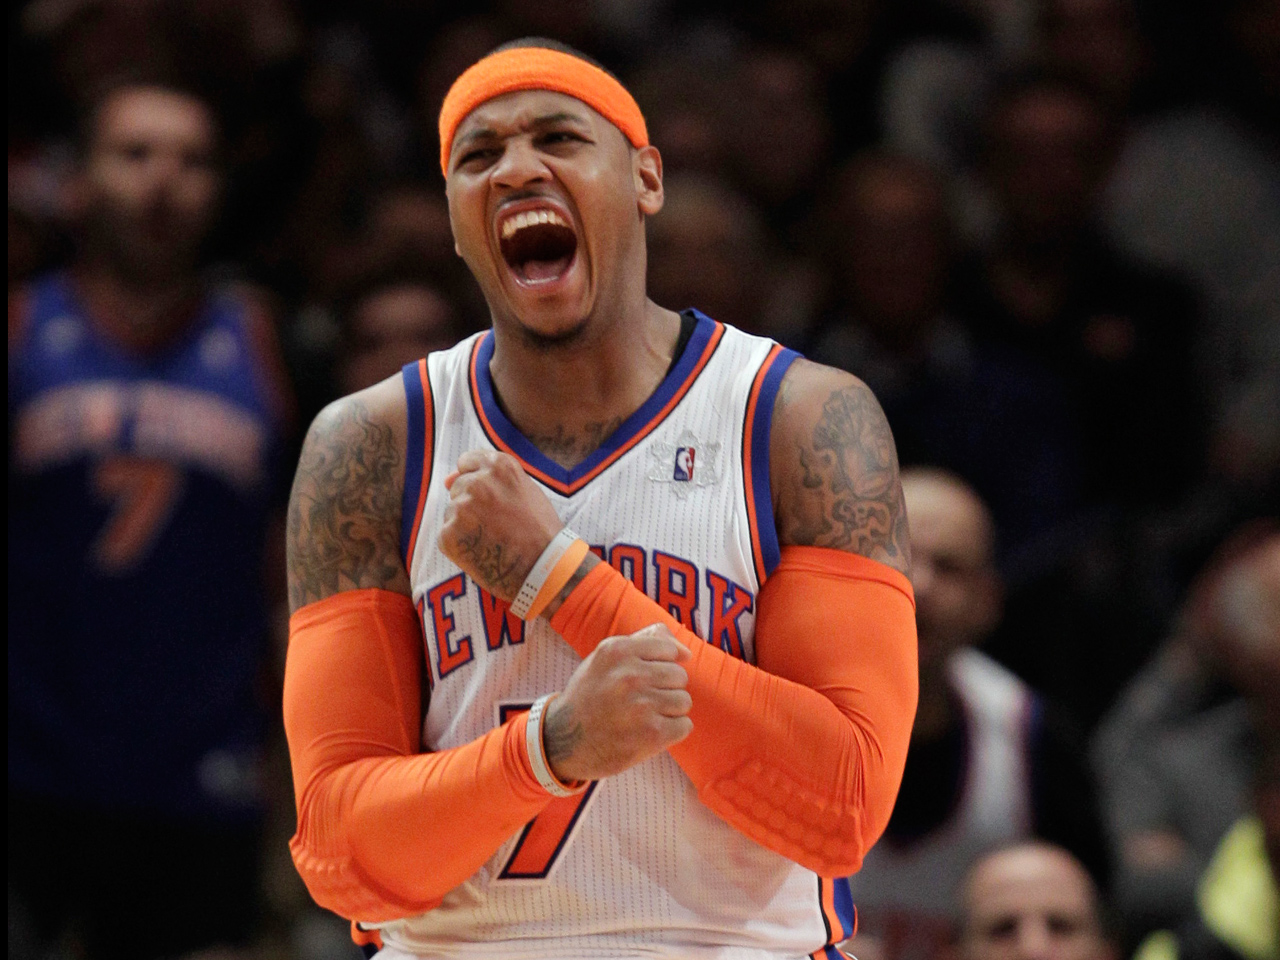 Carmelo Anthony - Photo 5 - Pictures - CBS News